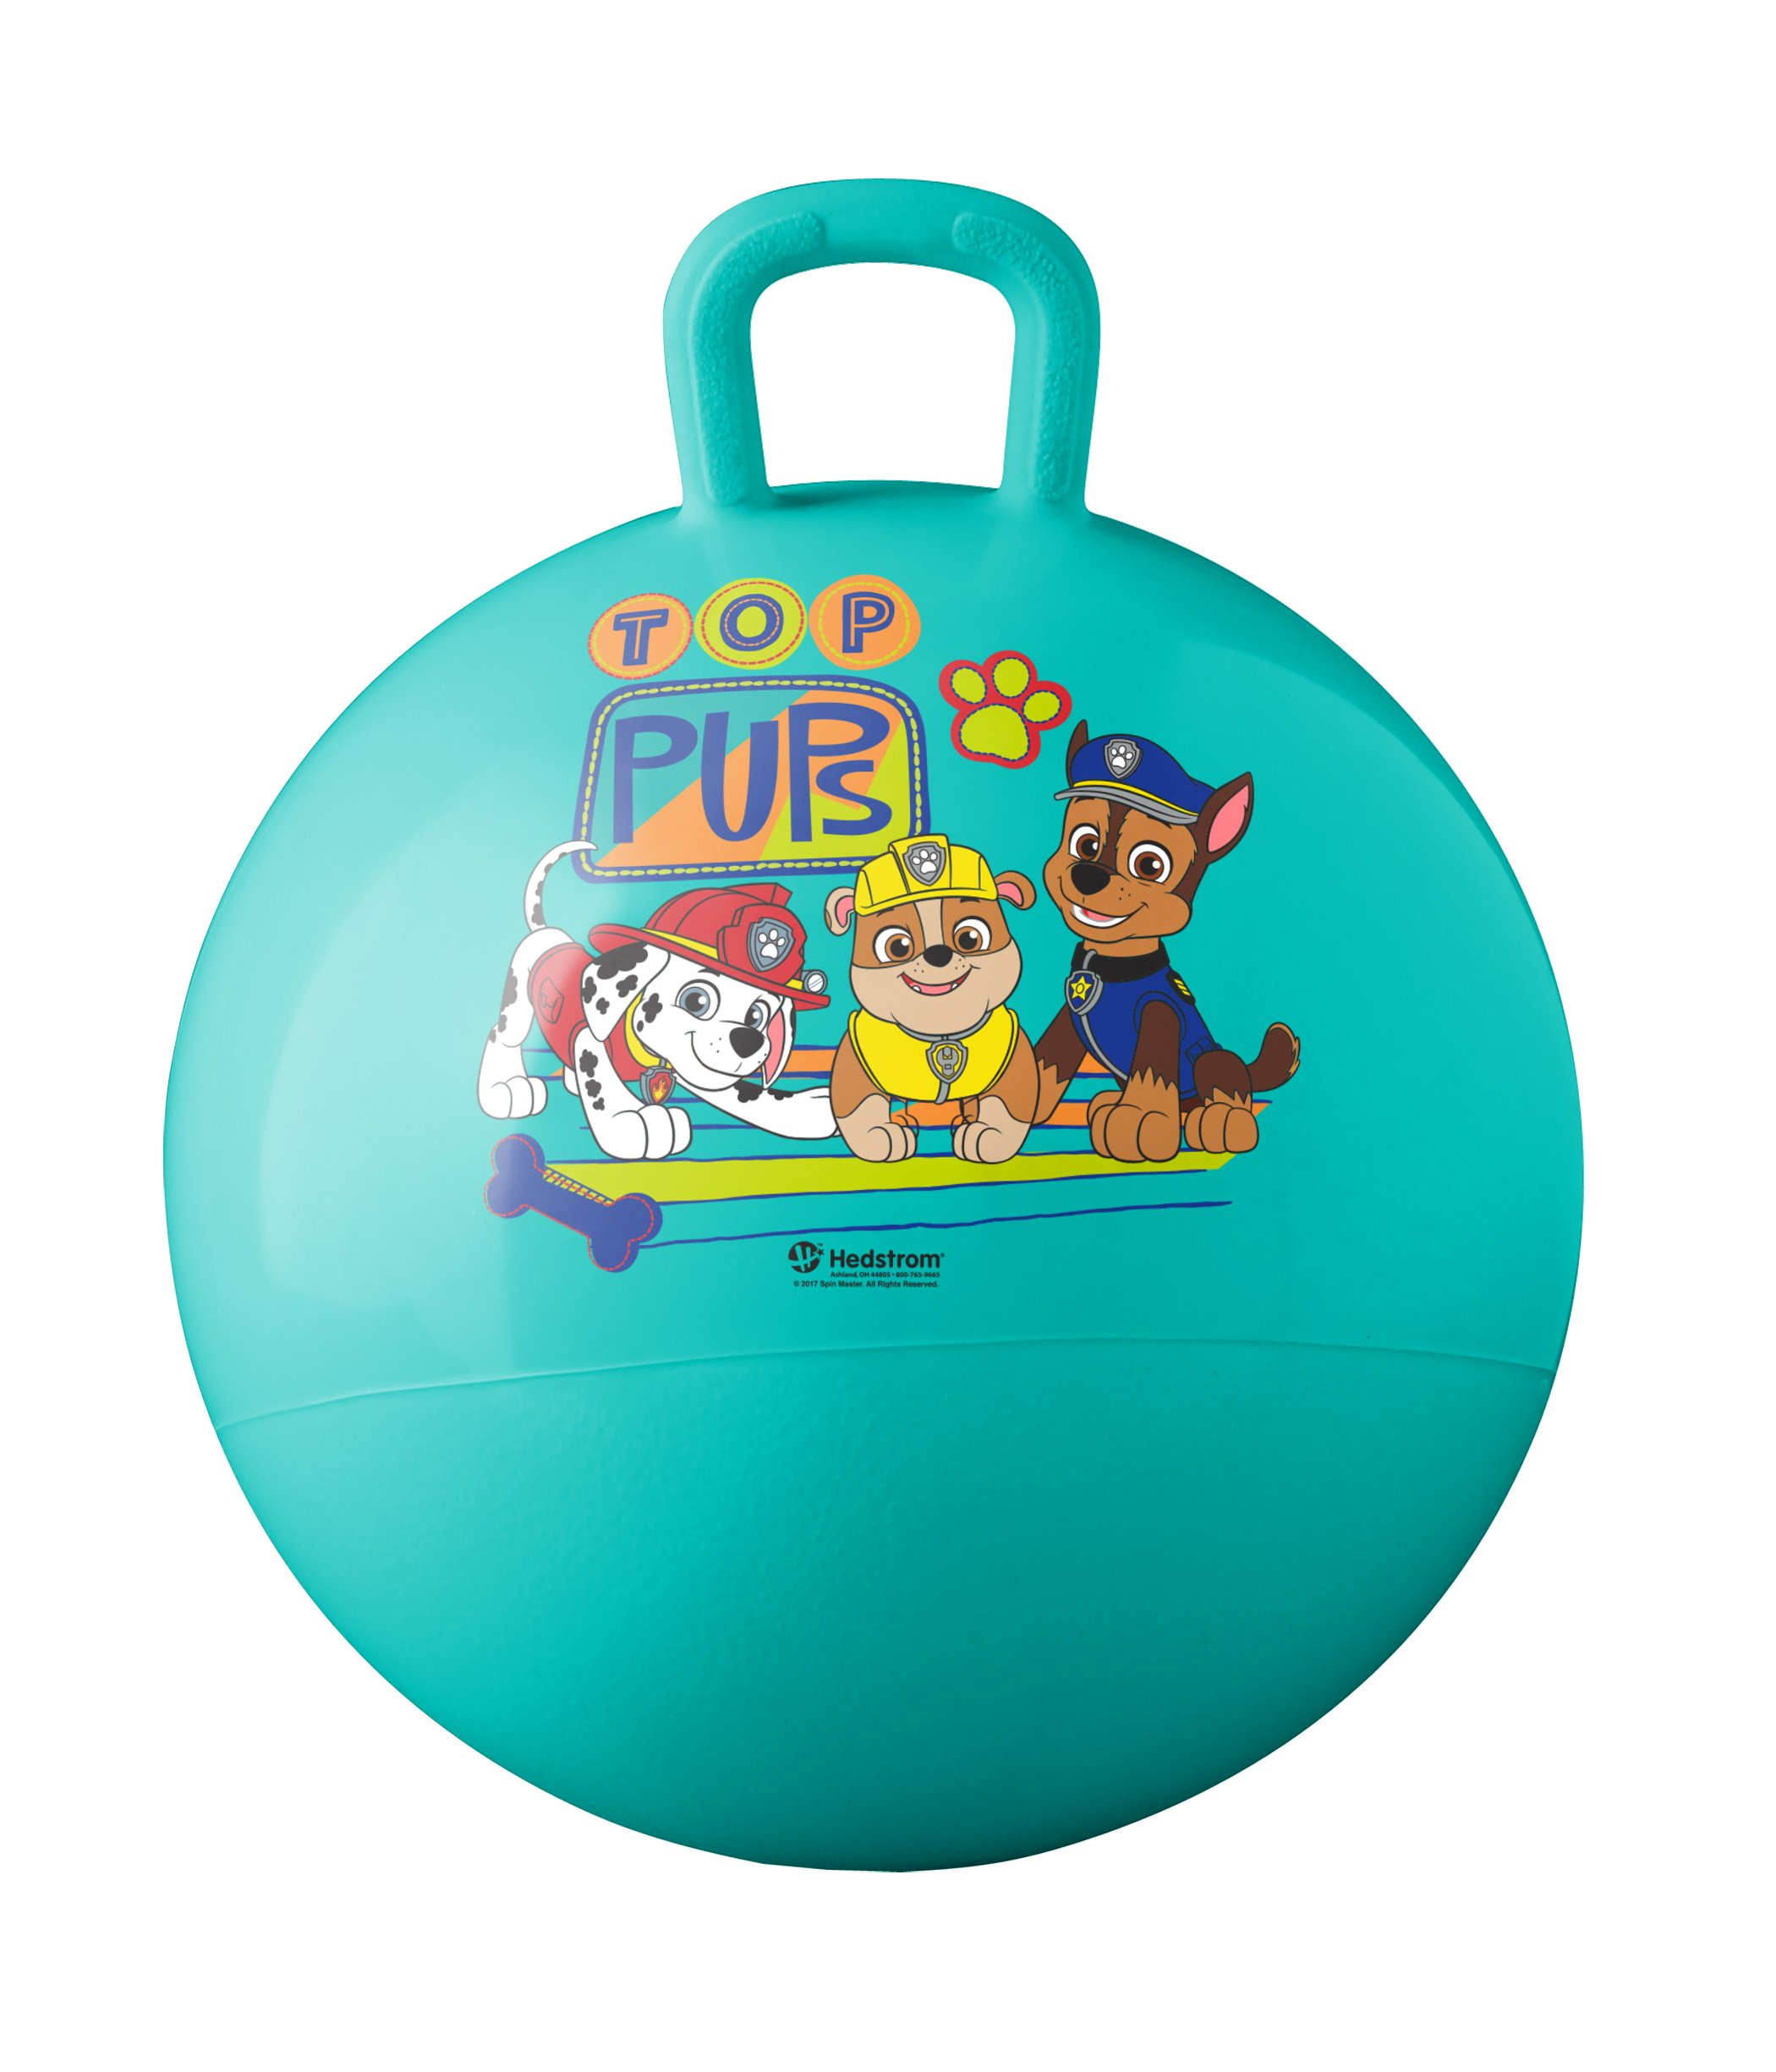 Nickelodeon Hedstrom Paw Patrol Hopper Ball, Hop ball for kids